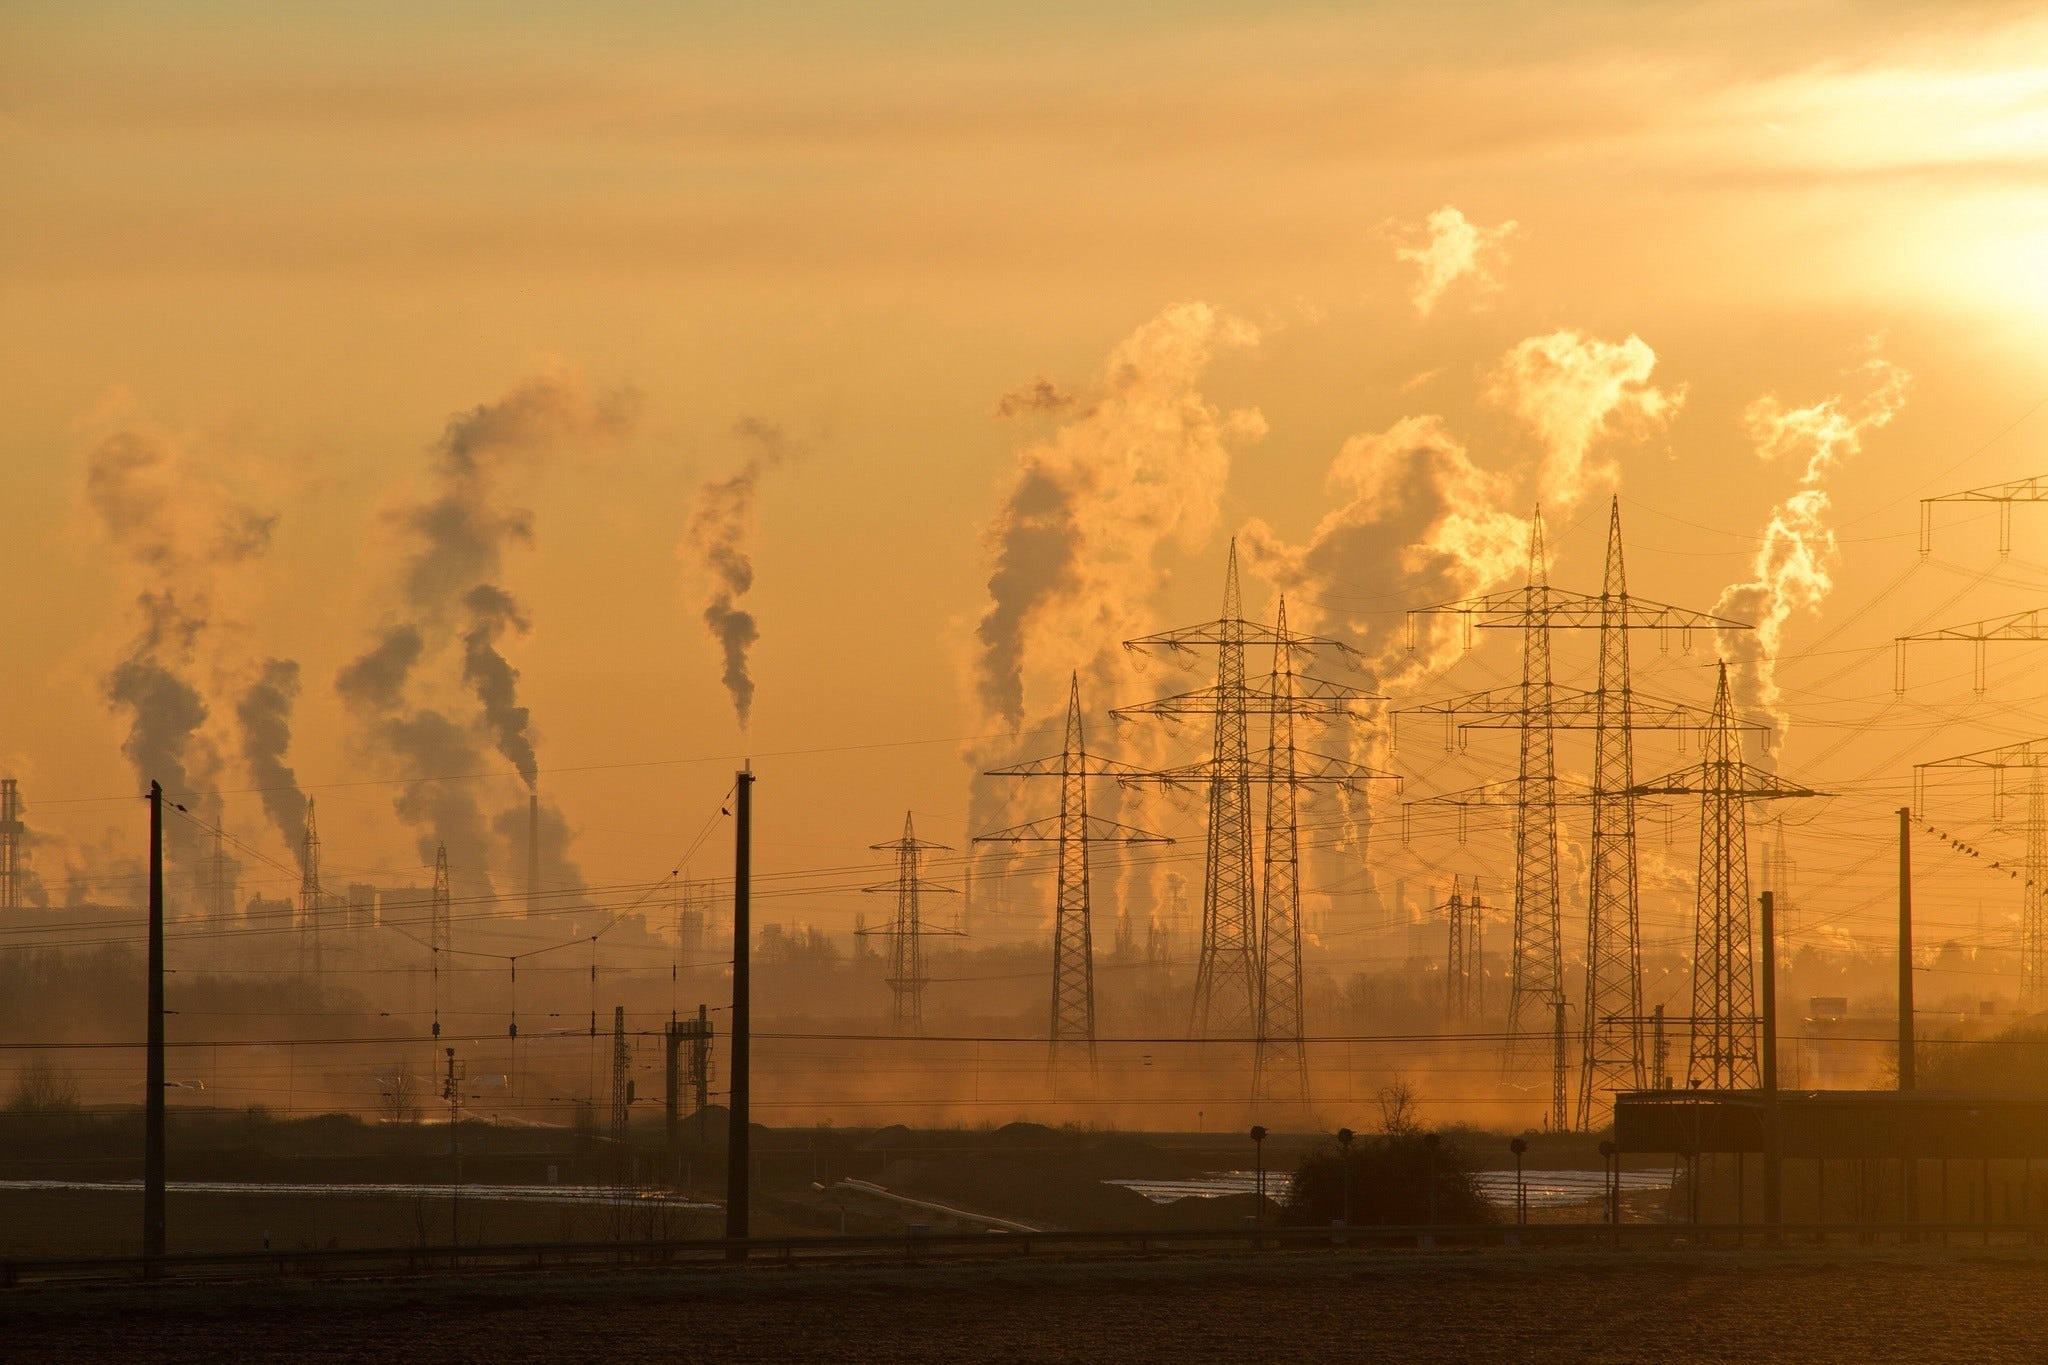 Refrigerant Emissions pose a threat to humans